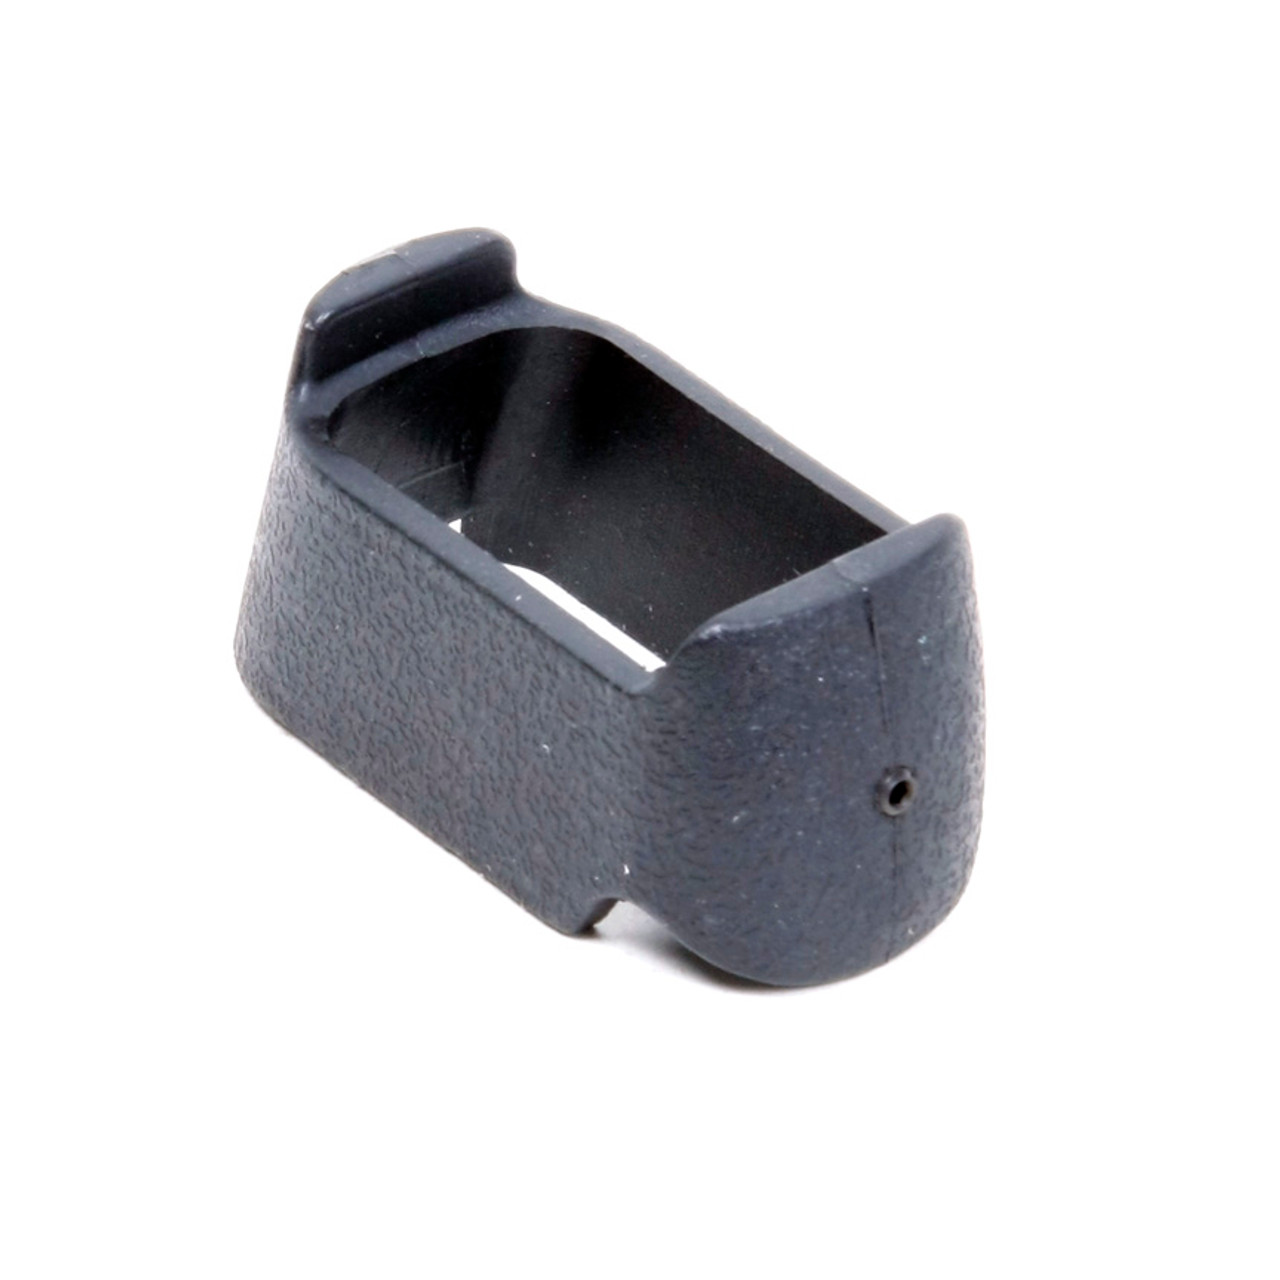 Magazine Spacer for the Glock® (Use 19 / 23 Magazines in 26 / 27 Pistols) - Black Polymer